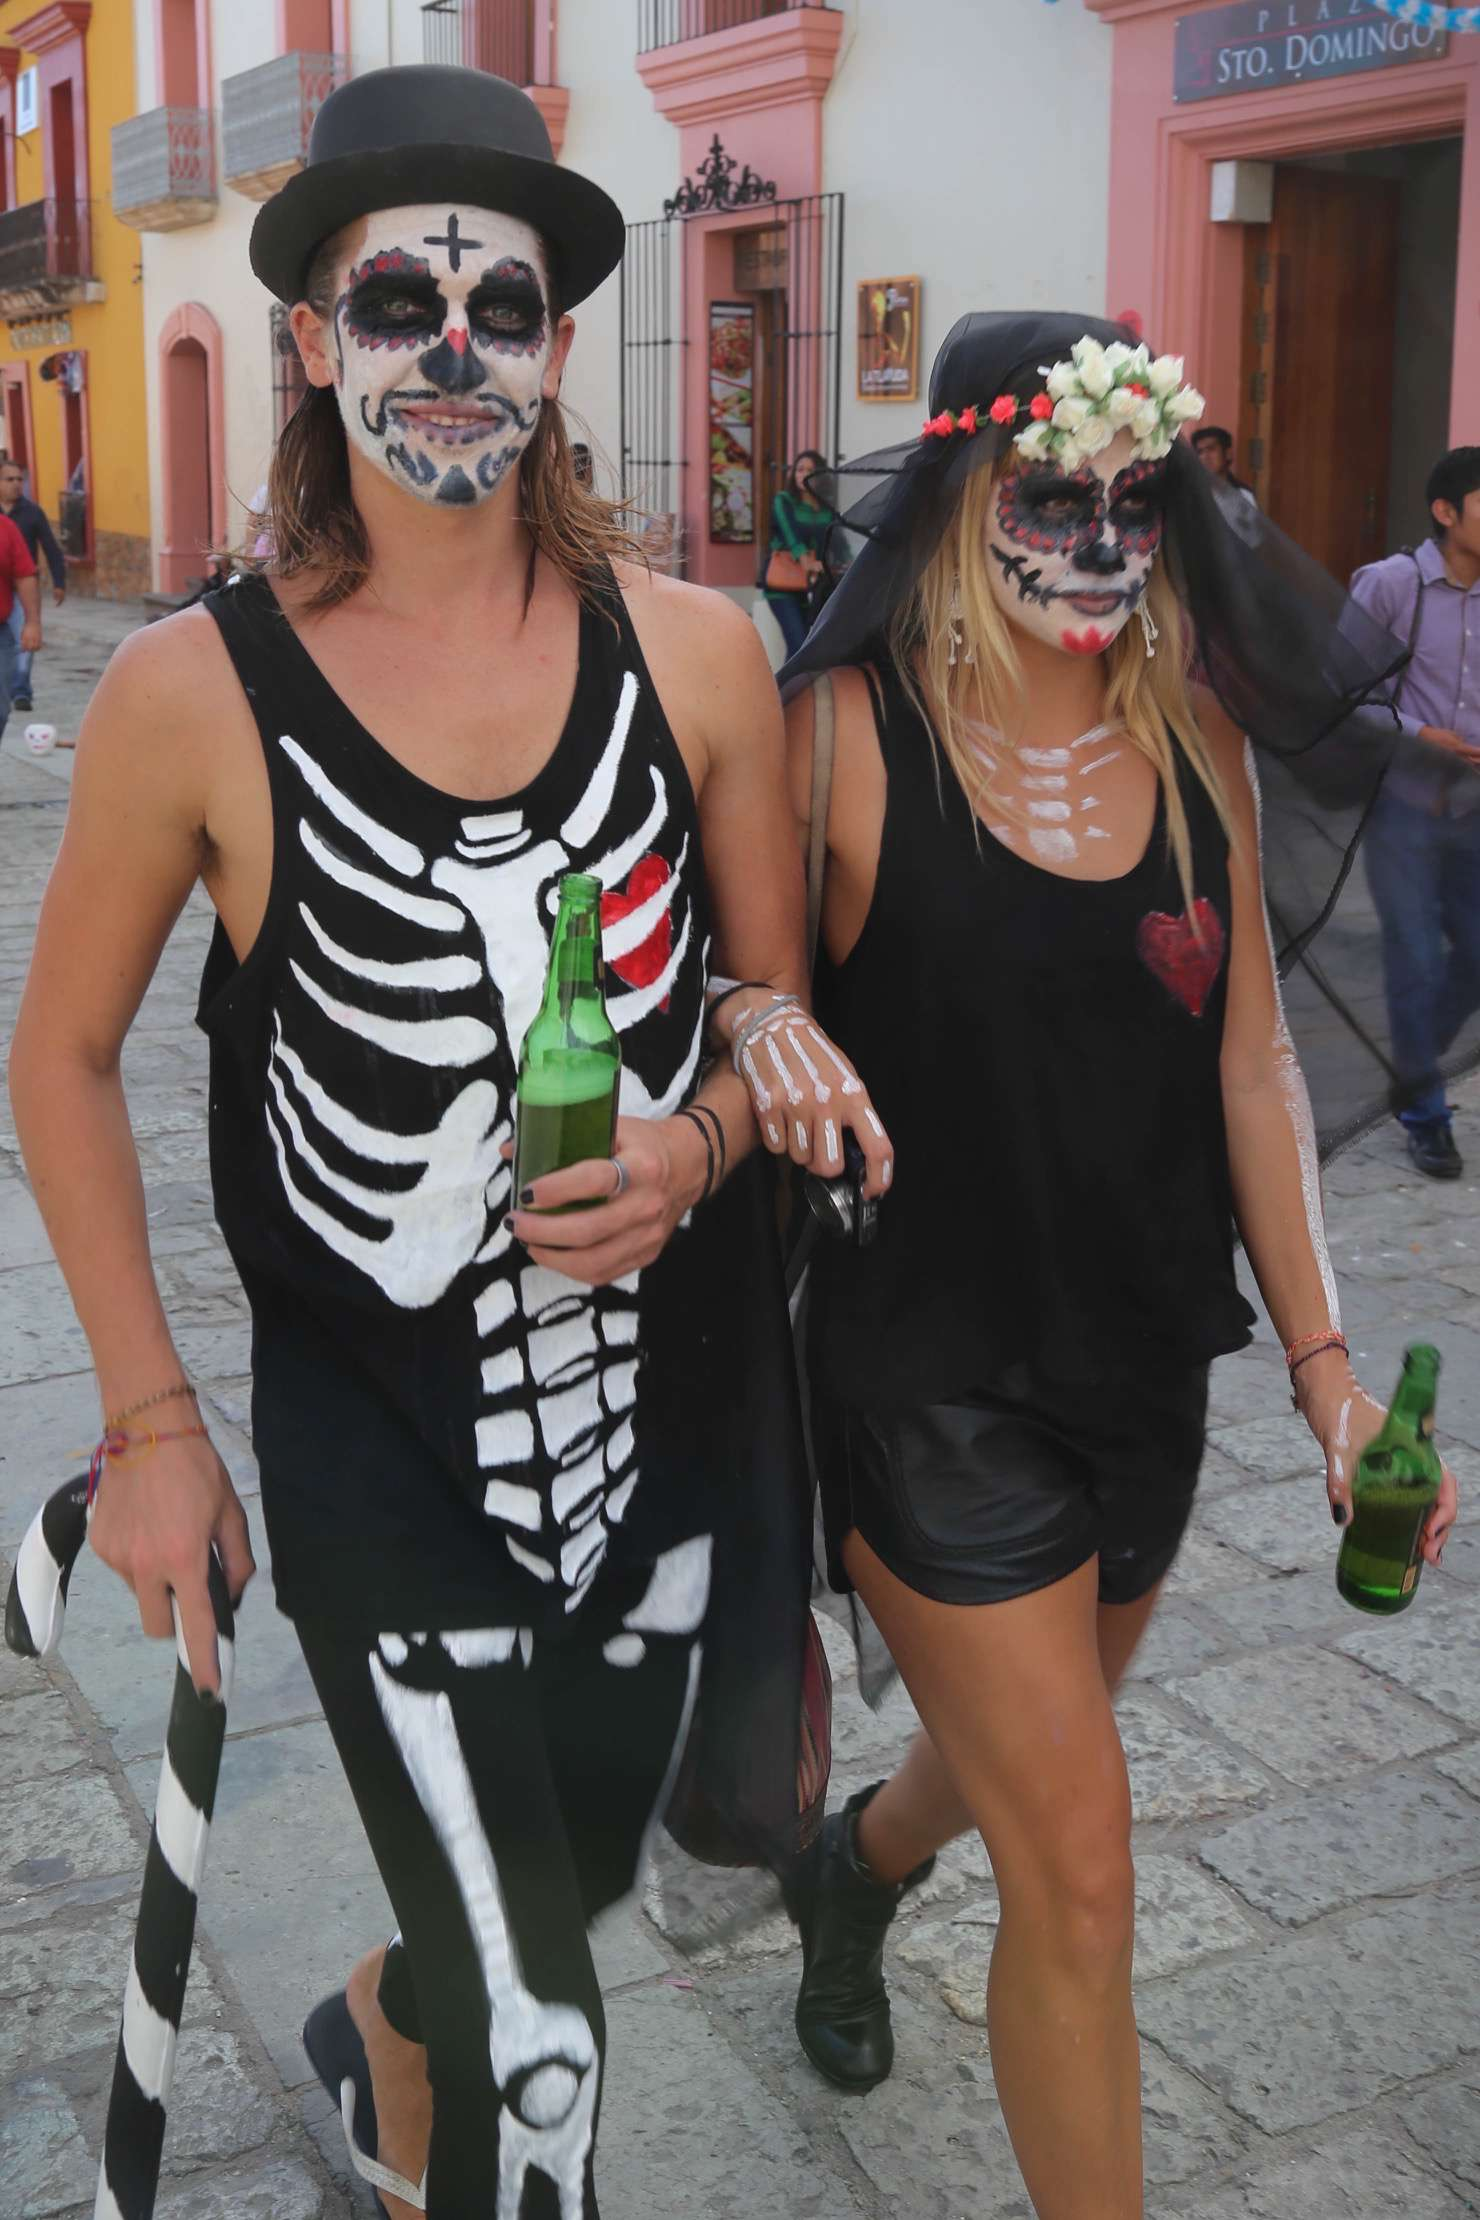 Out for an afternoon stroll these Dia de los Muertos celebrants in Oaxaca city don't seem put off by death.